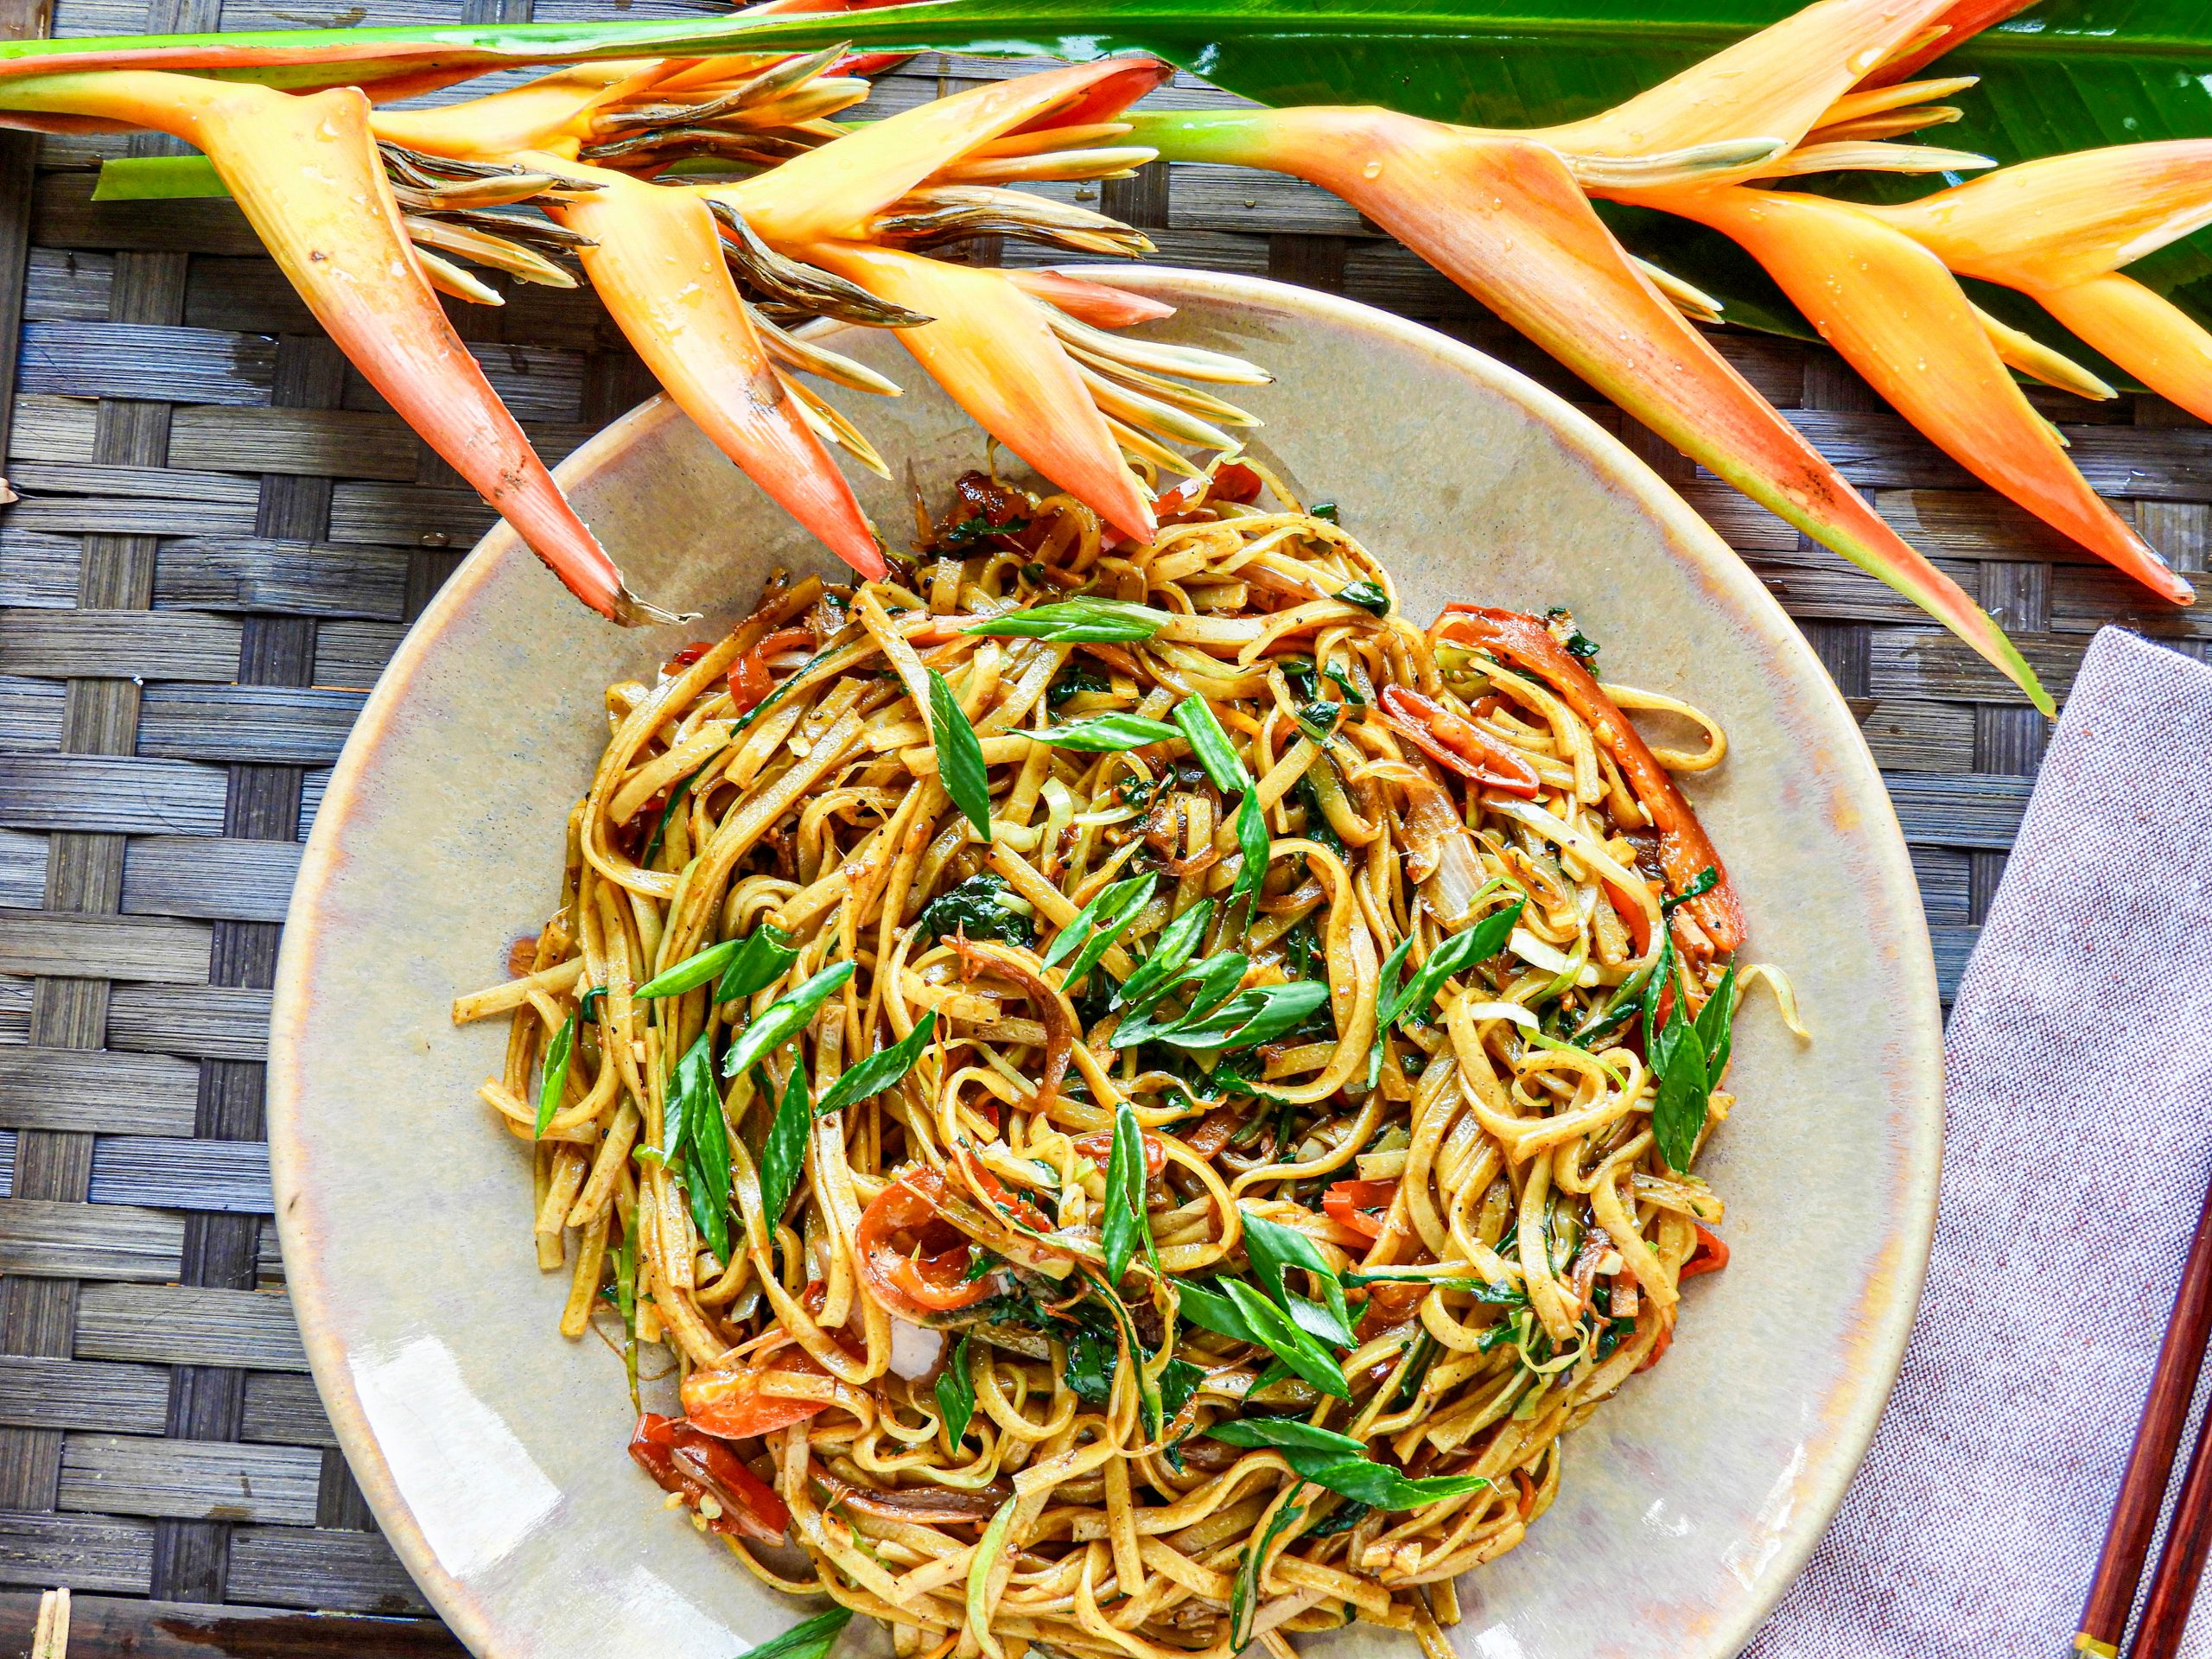 Vegetable Rice Noodles - Asian Cuisine at Kitchen by Nidhi